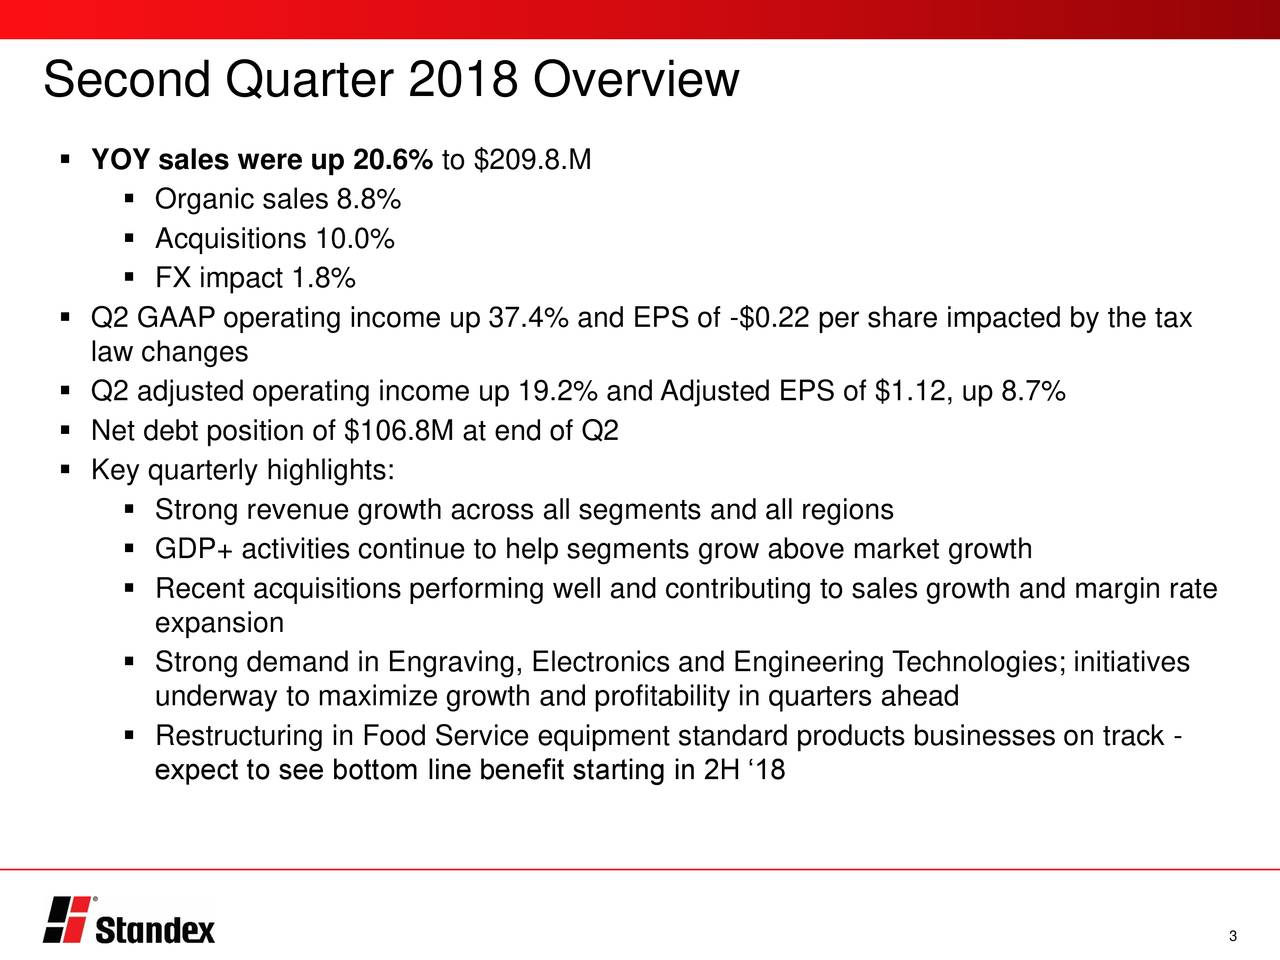 ▪ YOY sales were up 20.6% to $209.8.M ▪ Organic sales 8.8% ▪ Acquisitions 10.0% ▪ FX impact 1.8% ▪ Q2 GAAP operating income up 37.4% and EPS of -$0.22 per share impacted by the tax law changes ▪ Q2 adjusted operating income up 19.2% and Adjusted EPS of $1.12, up 8.7% ▪ Net debt position of $106.8M at end of Q2 ▪ Key quarterly highlights: ▪ Strong revenue growth across all segments and all regions ▪ GDP+ activities continue to help segments grow above market growth ▪ Recent acquisitions performing well and contributing to sales growth and margin rate expansion ▪ Strong demand in Engraving, Electronics and Engineering Technologies; initiatives underway to maximize growth and profitability in quarters ahead ▪ Restructuring in Food Service equipment standard products businesses on track - expect to see bottom line benefit starting in 2H '18 3